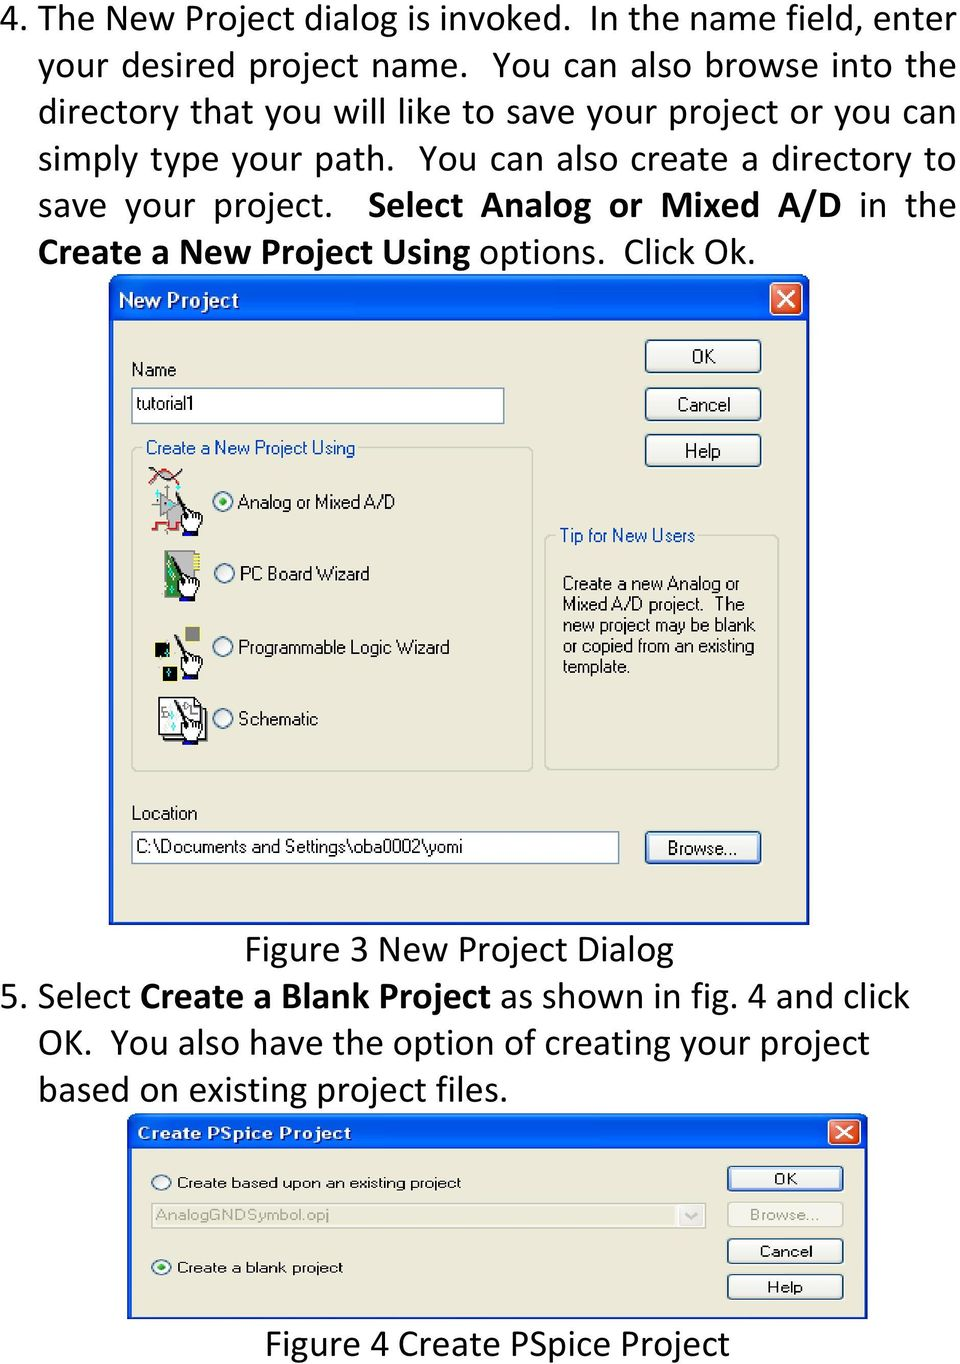 You can also create a directory to save your project. Select Analog or Mixed A/D in the Create a New Project Using options. Click Ok.